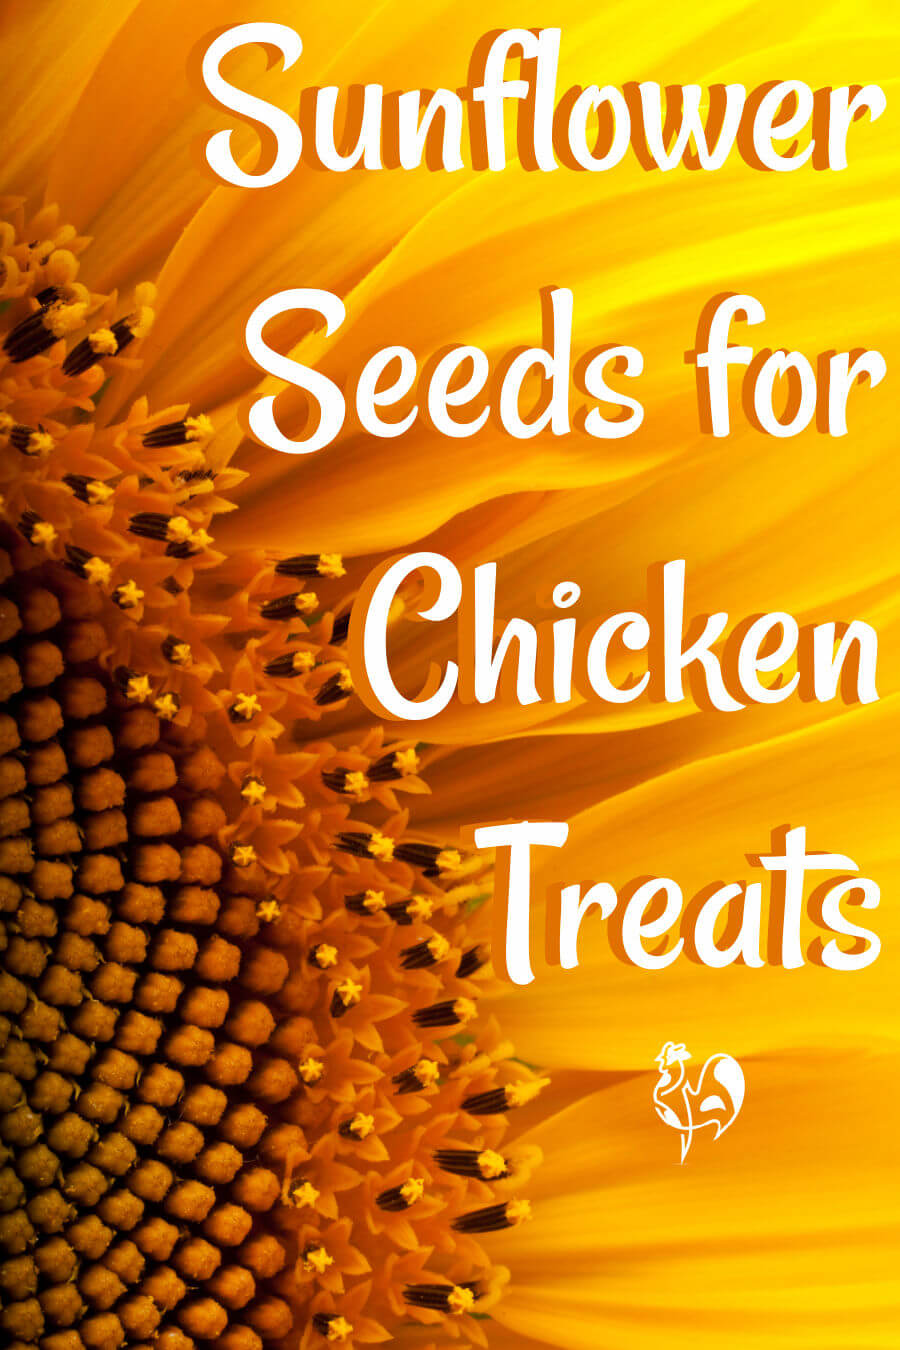 Sunflower seeds for chickens - Pin for later.